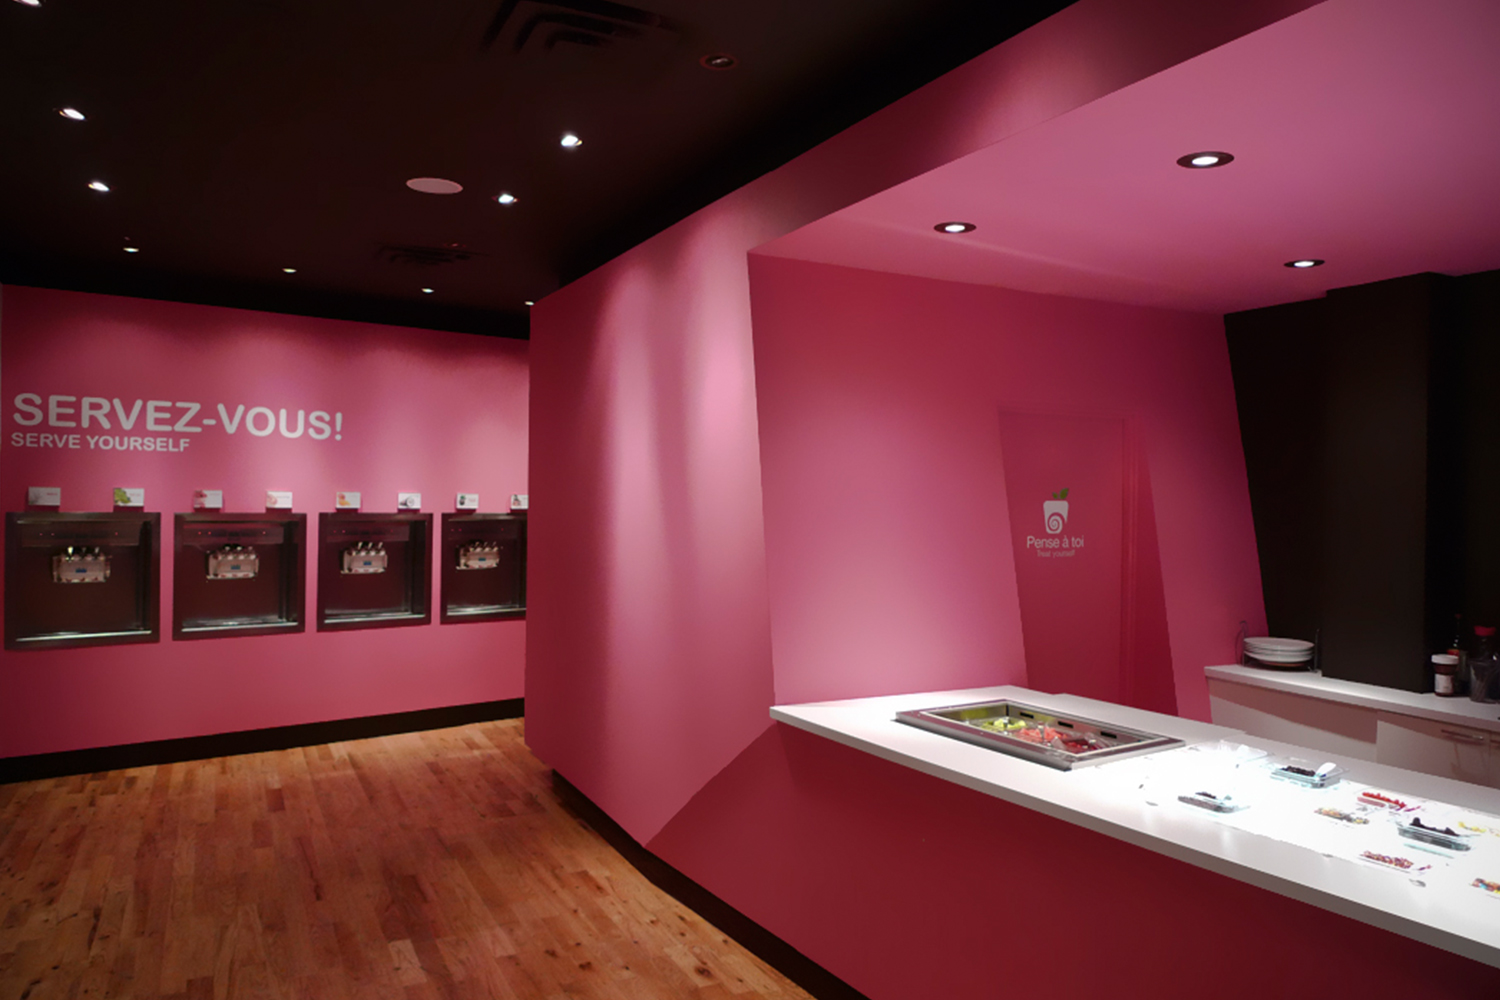 View of the shop with its hardwood floor. The volume of the checkout counter with its angles and its pink color contrasts on a black background. We see in the distance the built-in vending machines